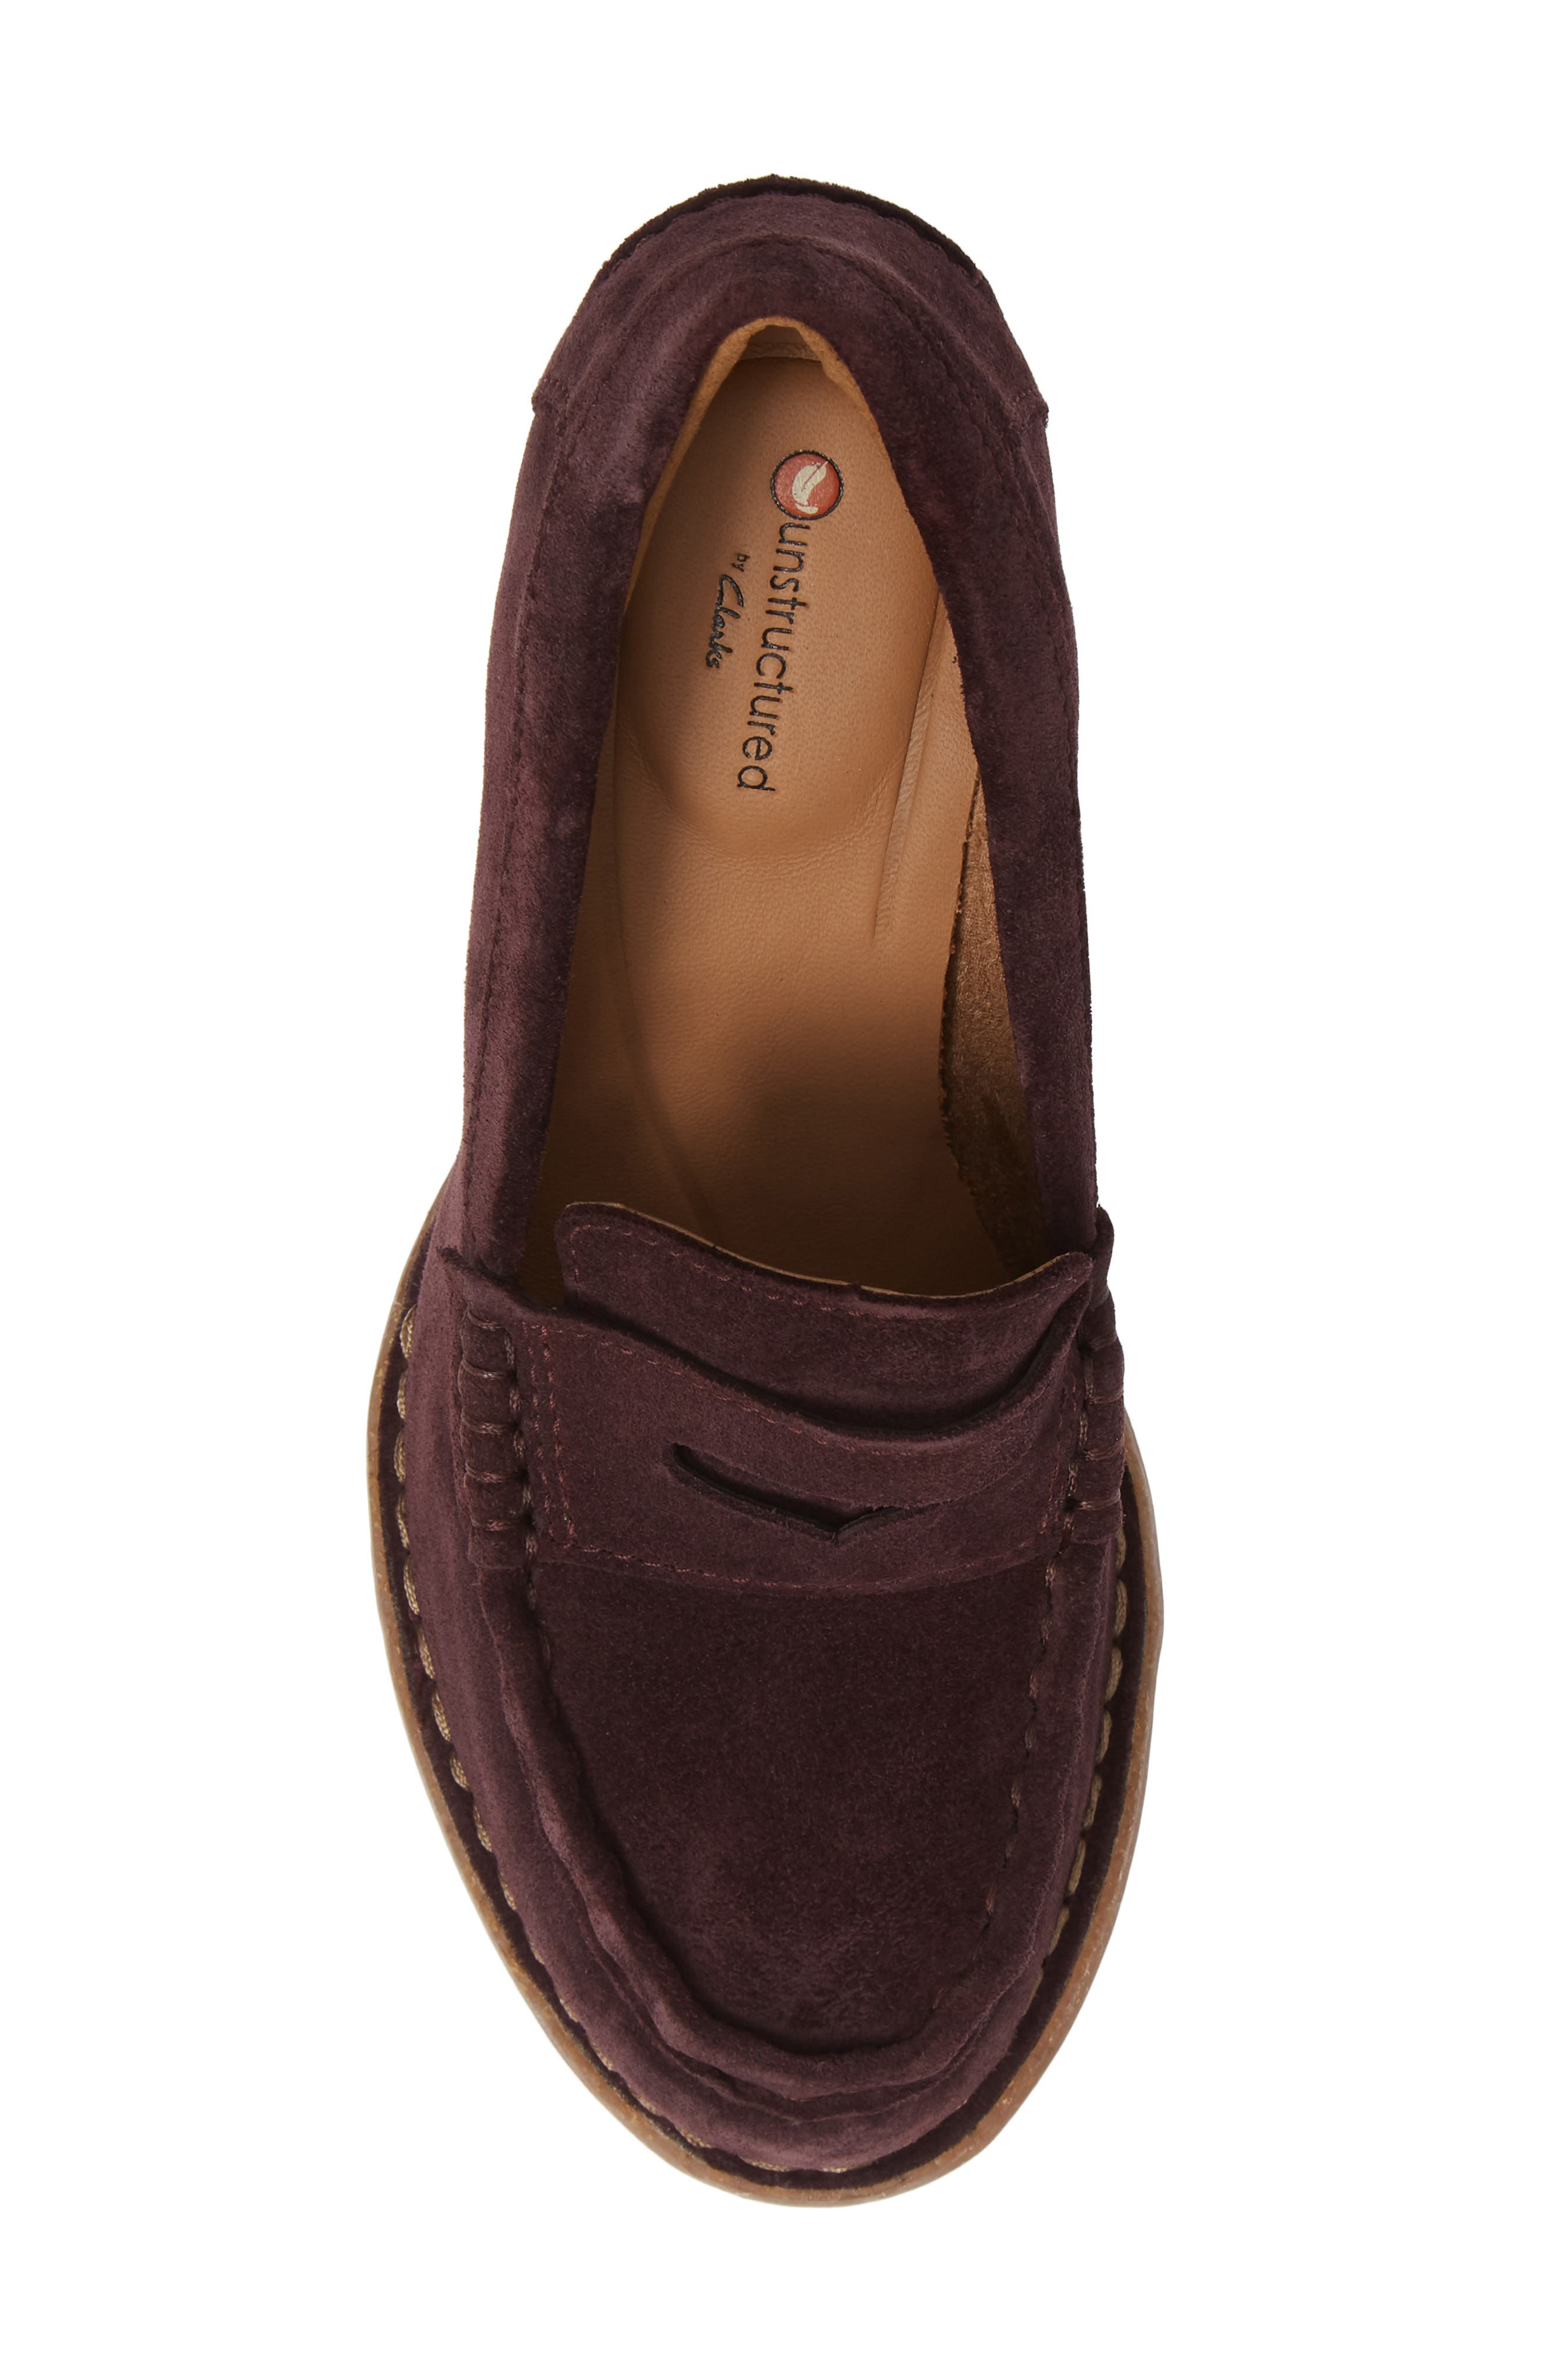 Carletta Belle Pump,                             Alternate thumbnail 5, color,                             BURGUNDY SUEDE